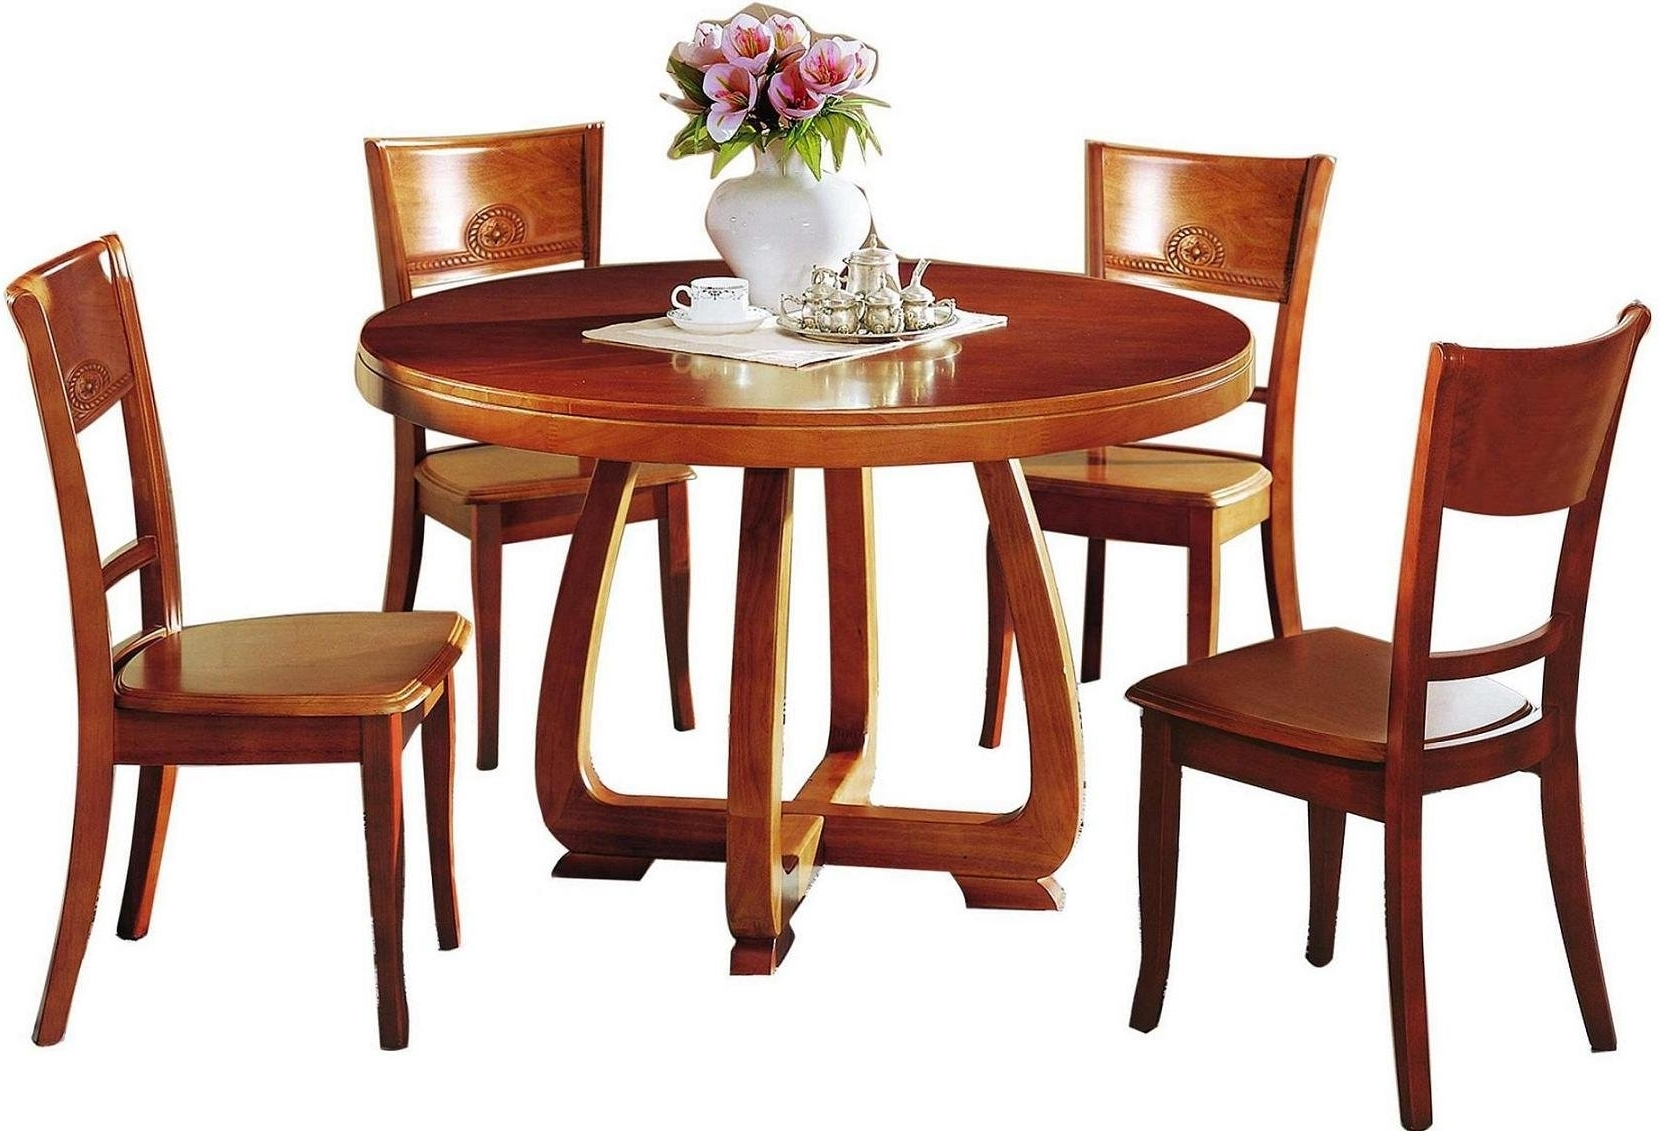 Dining Room Inspiring Wooden Dining Tables And Chairs Leather Dining Inside 2017 Wooden Dining Sets (View 4 of 25)